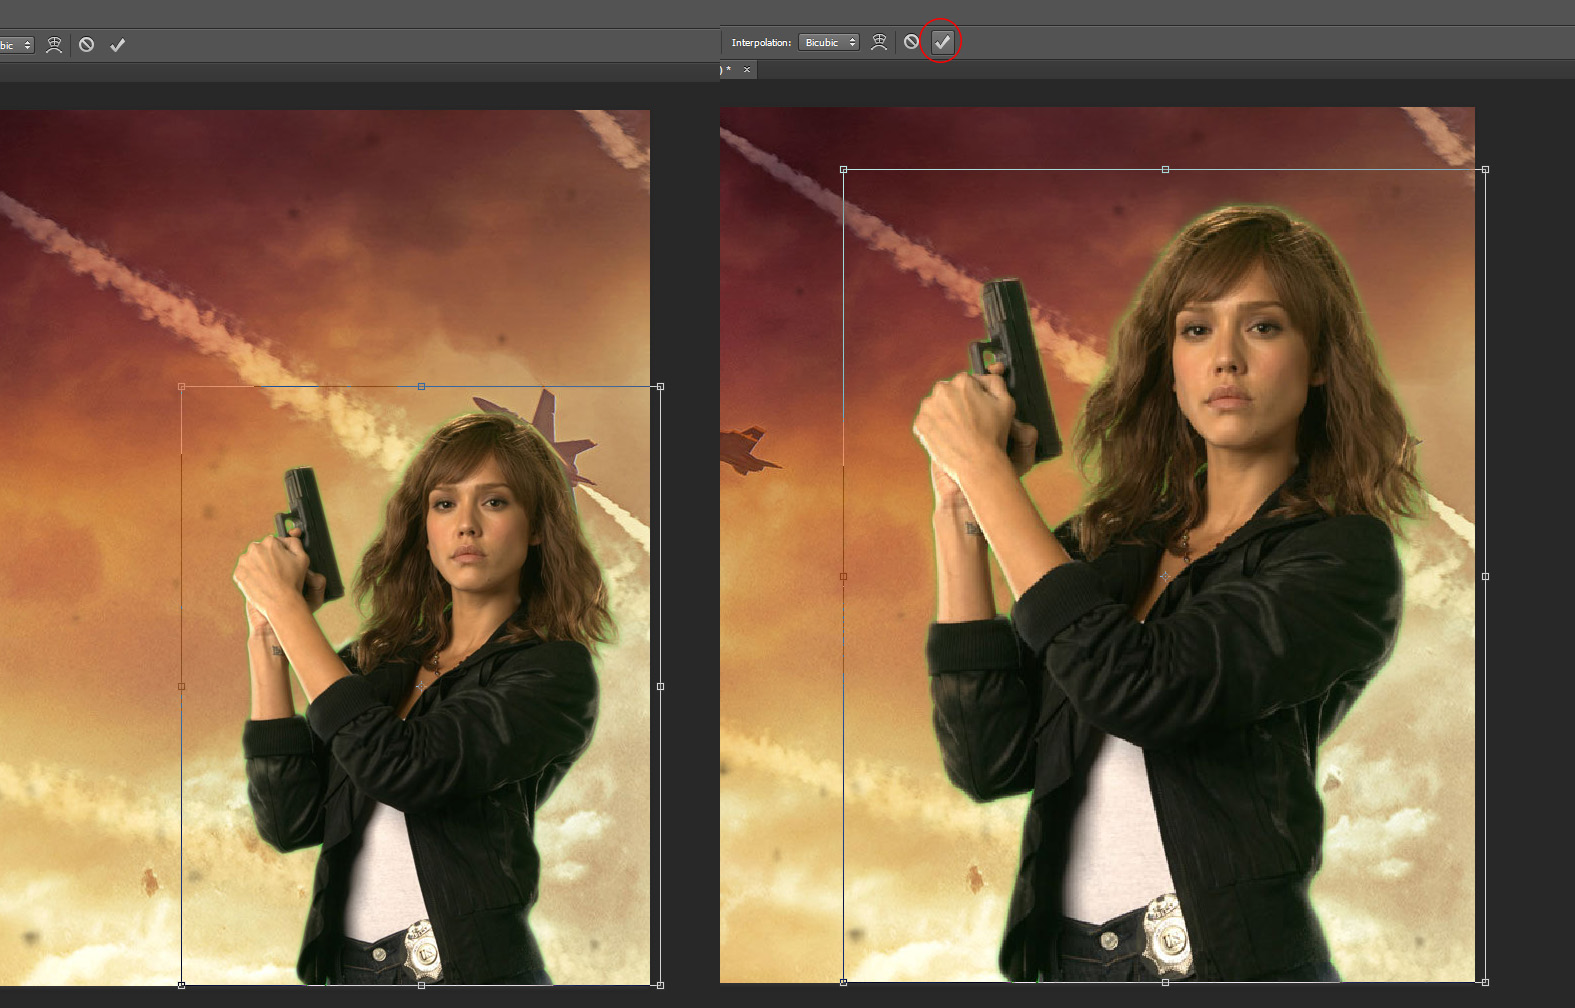 Transforming the Image in photoshop